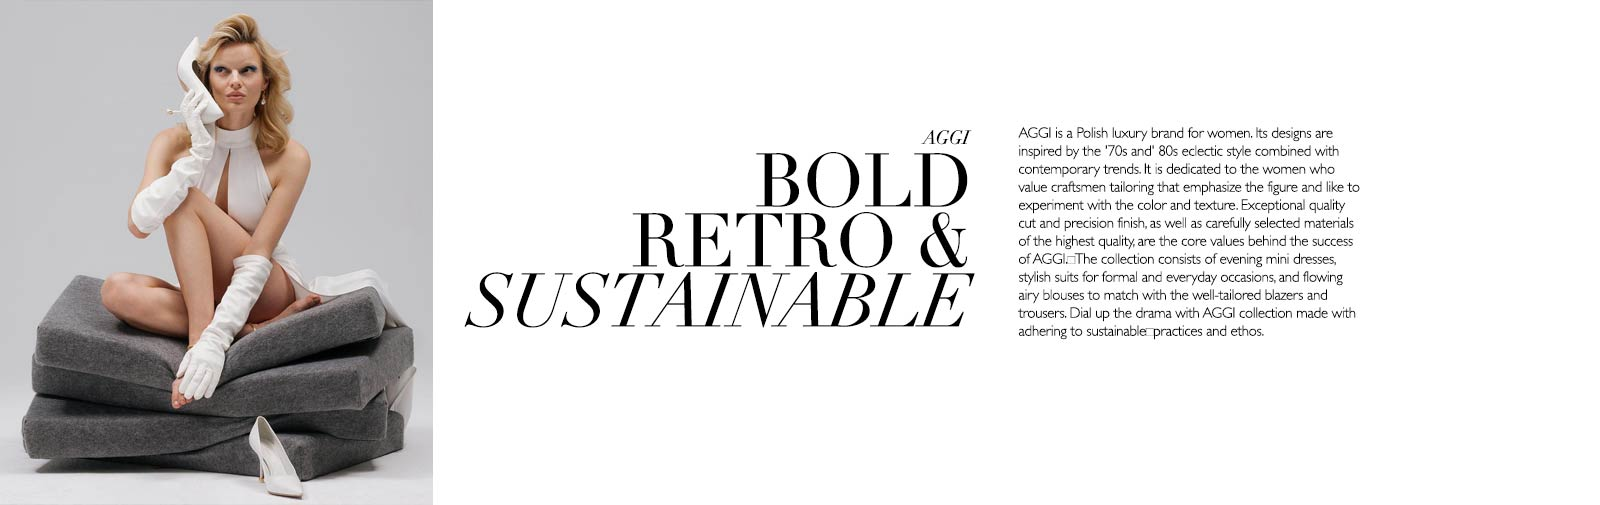 AGGI - BOLD RETRO & SUSTAINABLE - AGGI is a Polish luxury brand for women. Its designs are inspired by the '70s and' 80s eclectic style combined with contemporary trends. It is dedicated to the women who value craftsmen tailoring that emphasize the figure and like to experiment with the color and texture. Exceptional quality cut and precision finish, as well as carefully selected materials of the highest quality, are the core values behind the success of AGGI.The collection consists of evening mini dresses, stylish suits for formal and everyday occasions, and flowing airy blouses to match with the well-tailored blazers and trousers. Dial up the drama with AGGI collection made with adhering to sustainablepractices and ethos.